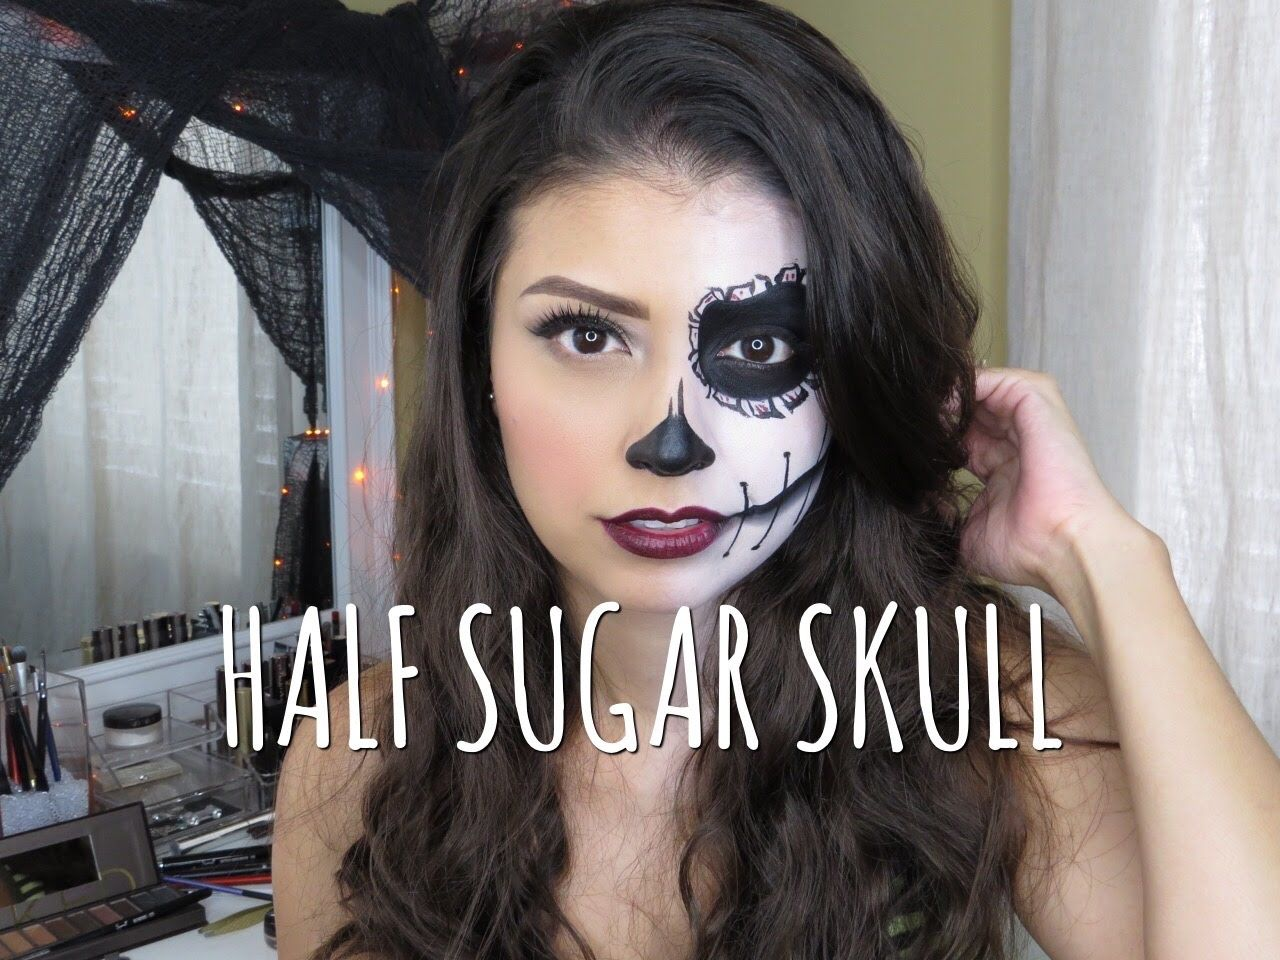 easy half sugar skull halloween makeup tutorial beauty. Black Bedroom Furniture Sets. Home Design Ideas